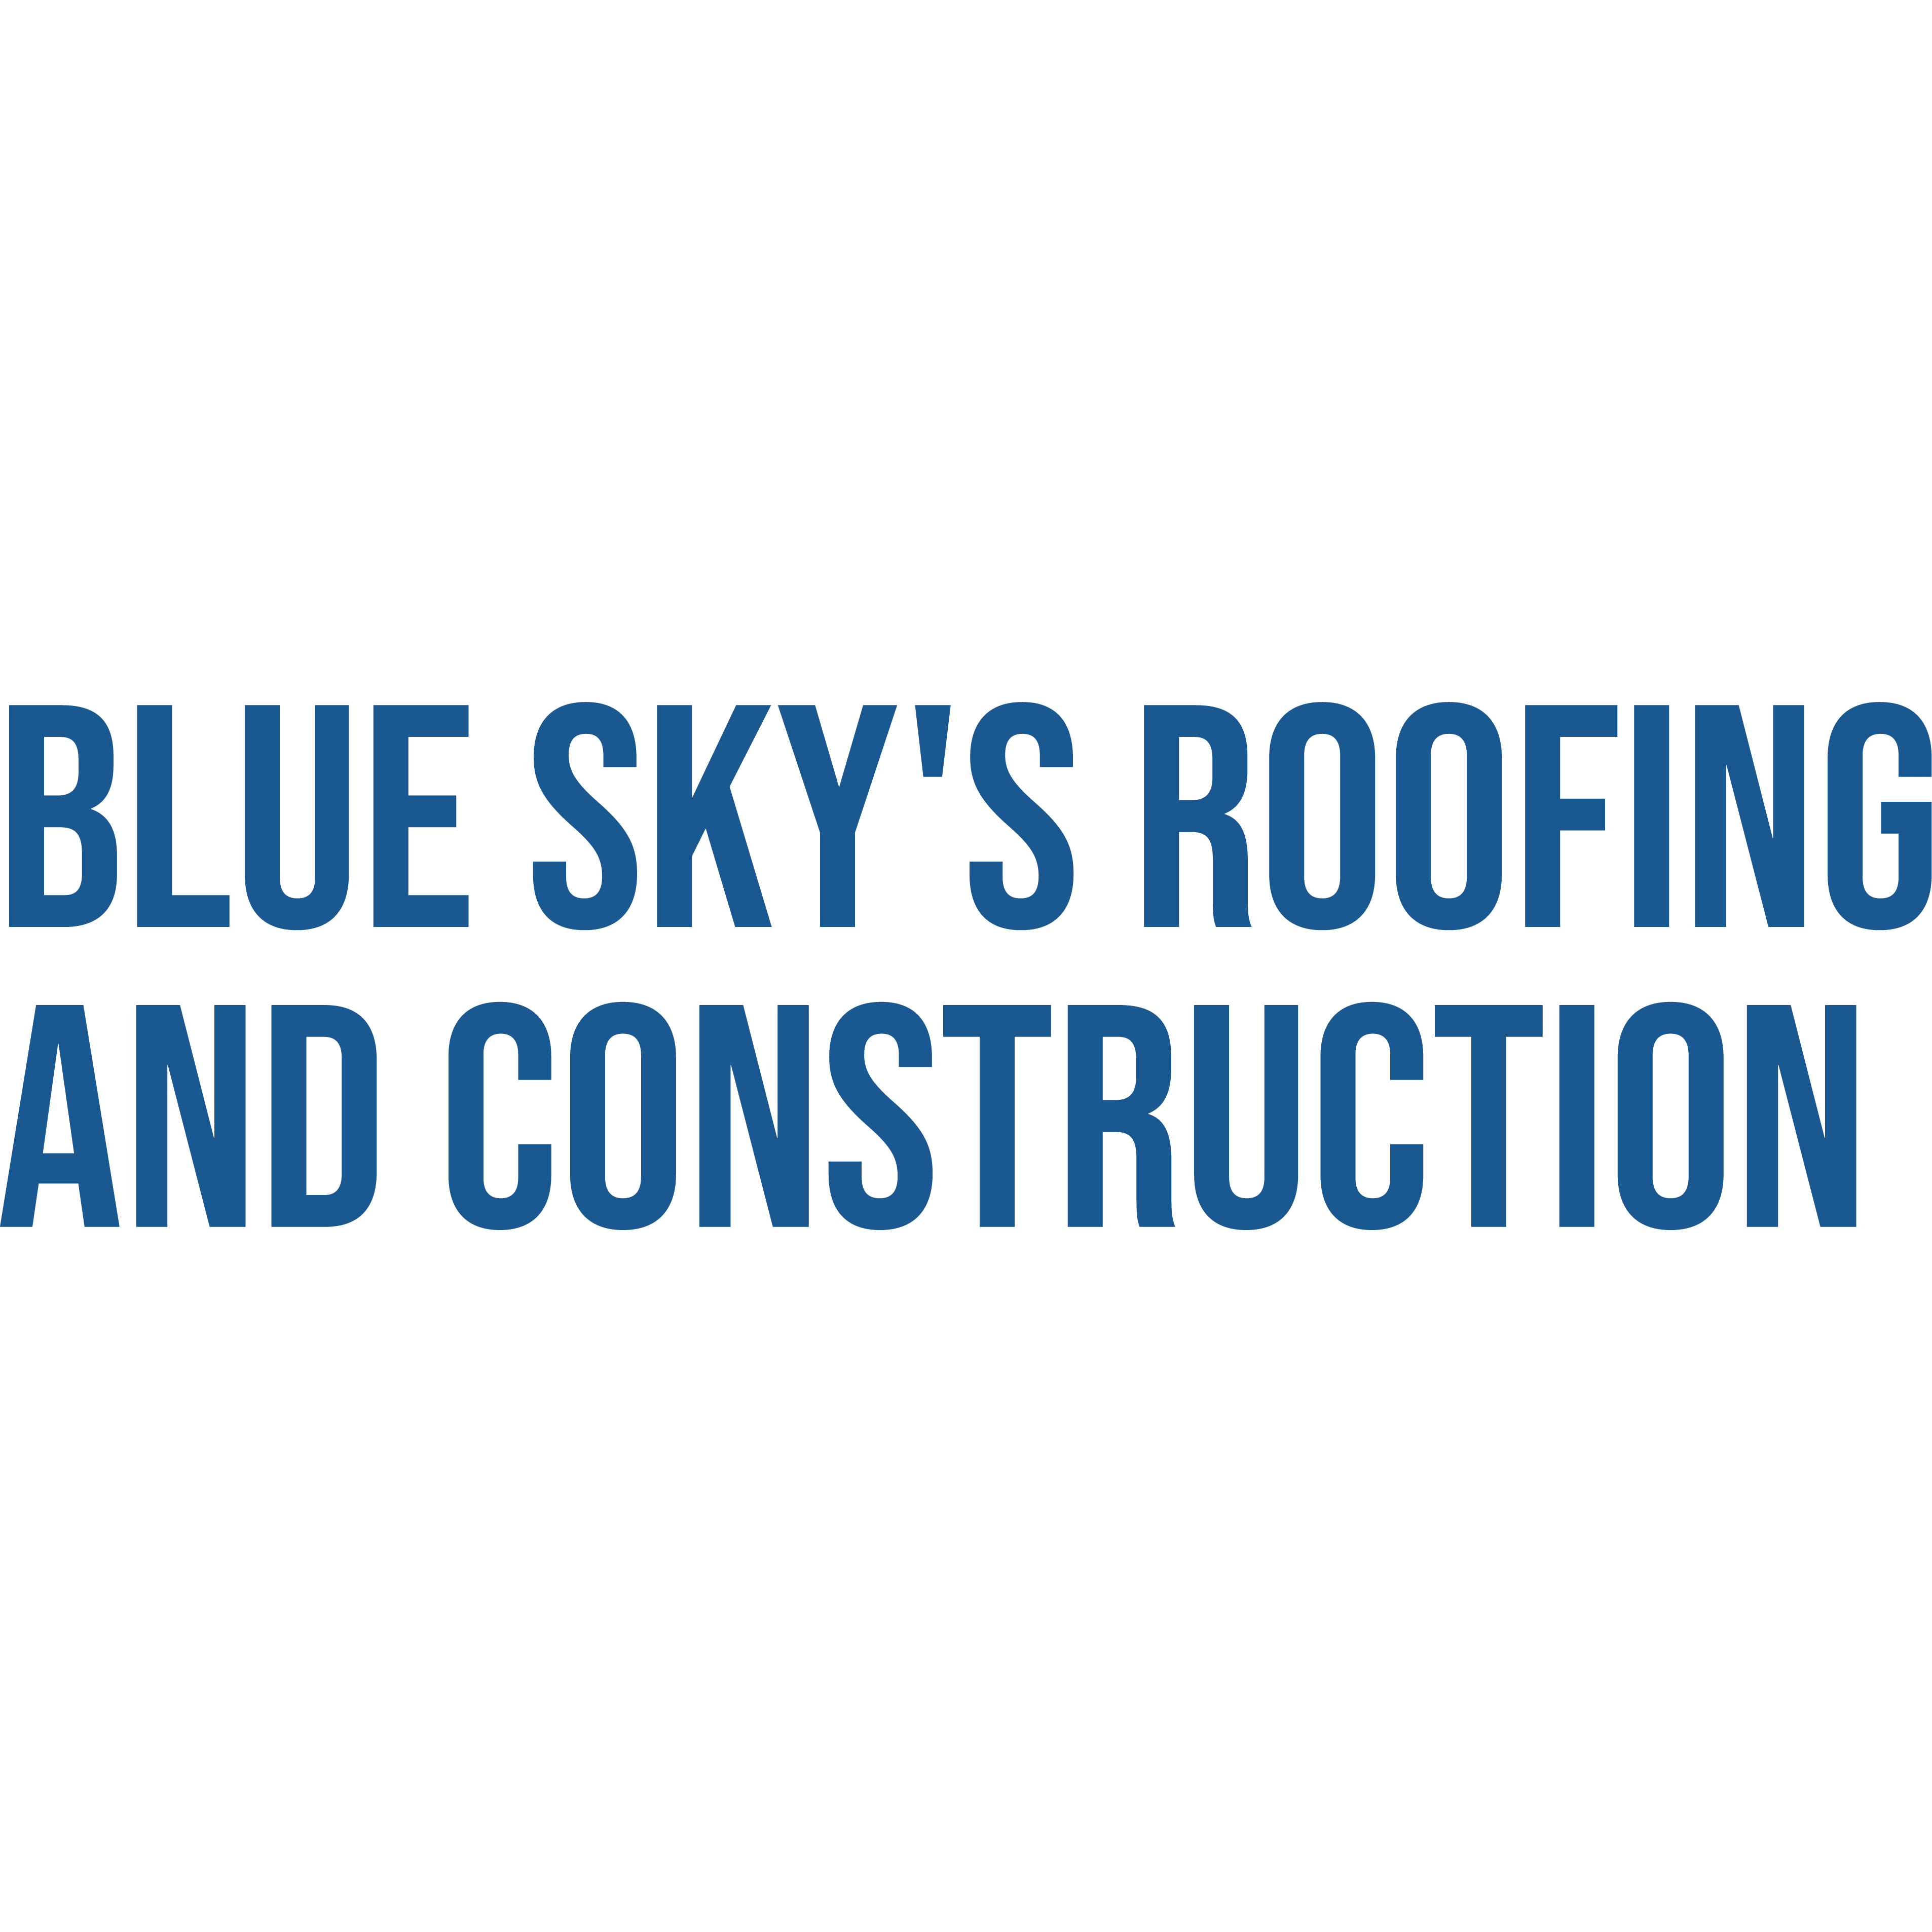 Blue Sky's Roofing and Construction Logo